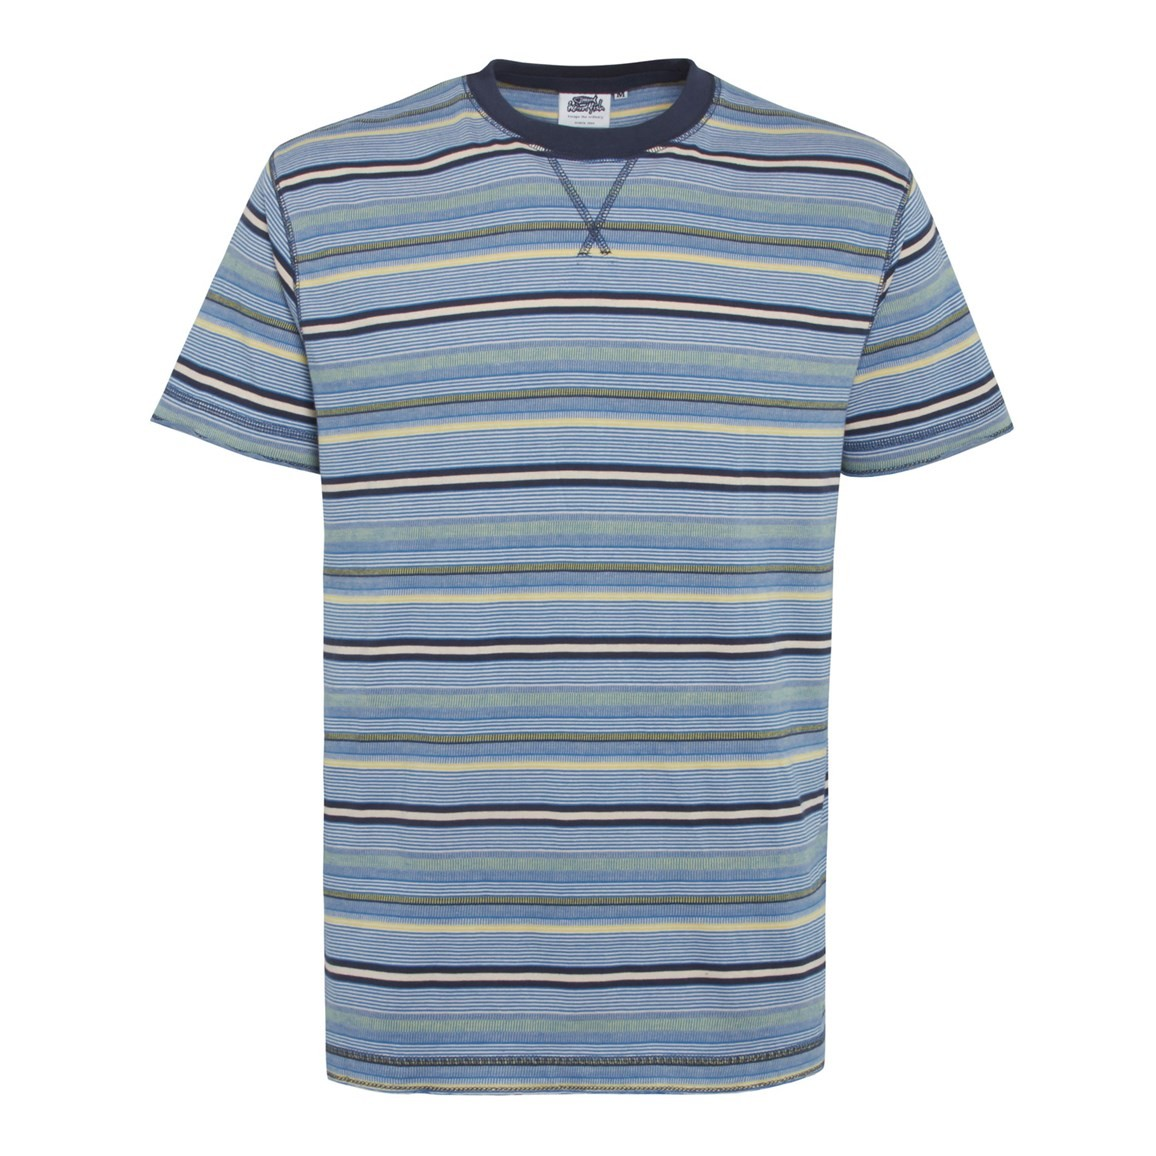 Image of Aire Jacquard Striped T-Shirt Primary Blue